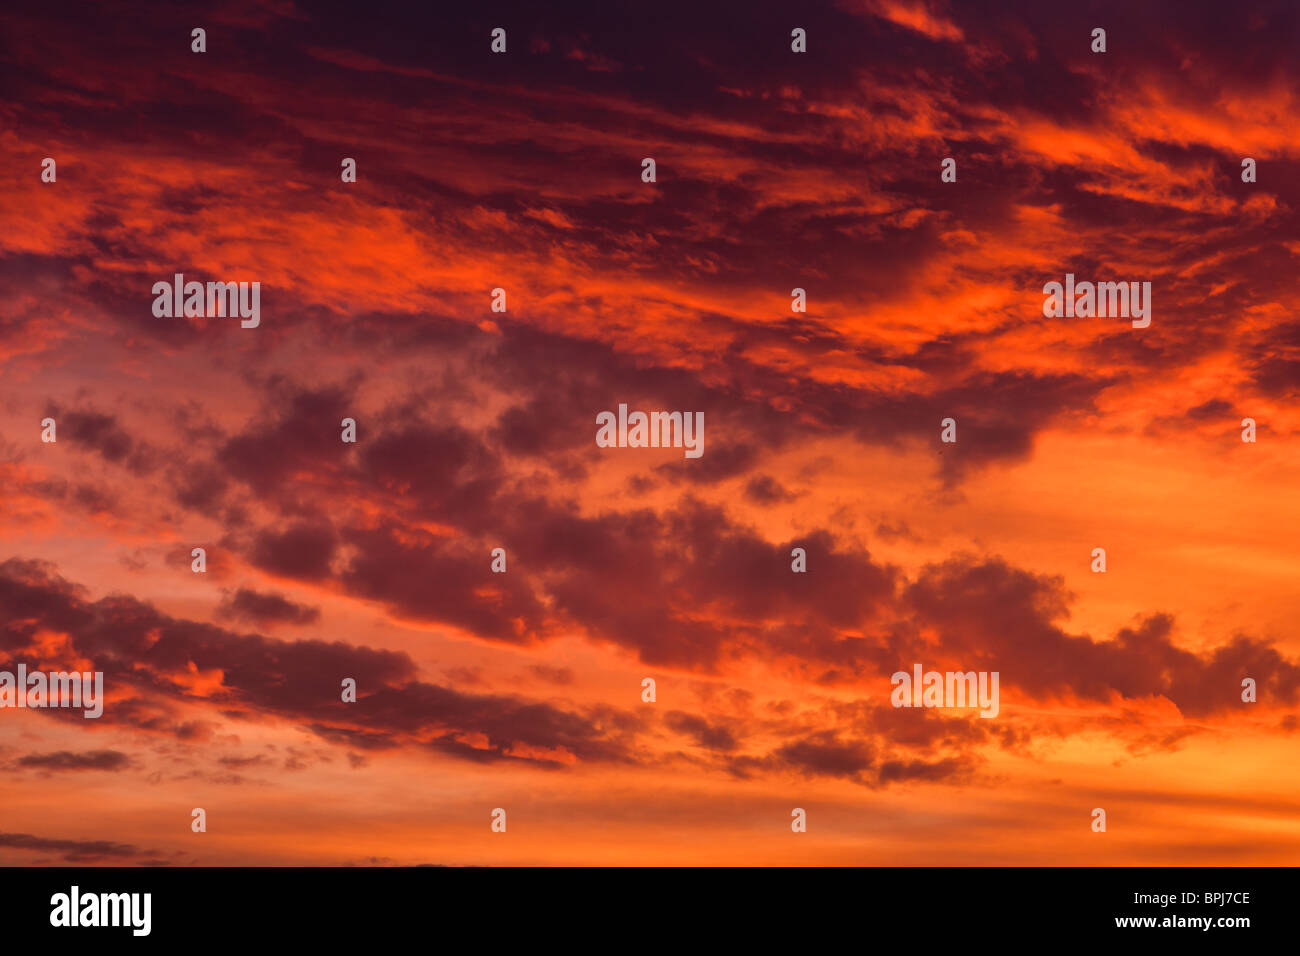 Colorful skyscape at sunset. - Stock Image